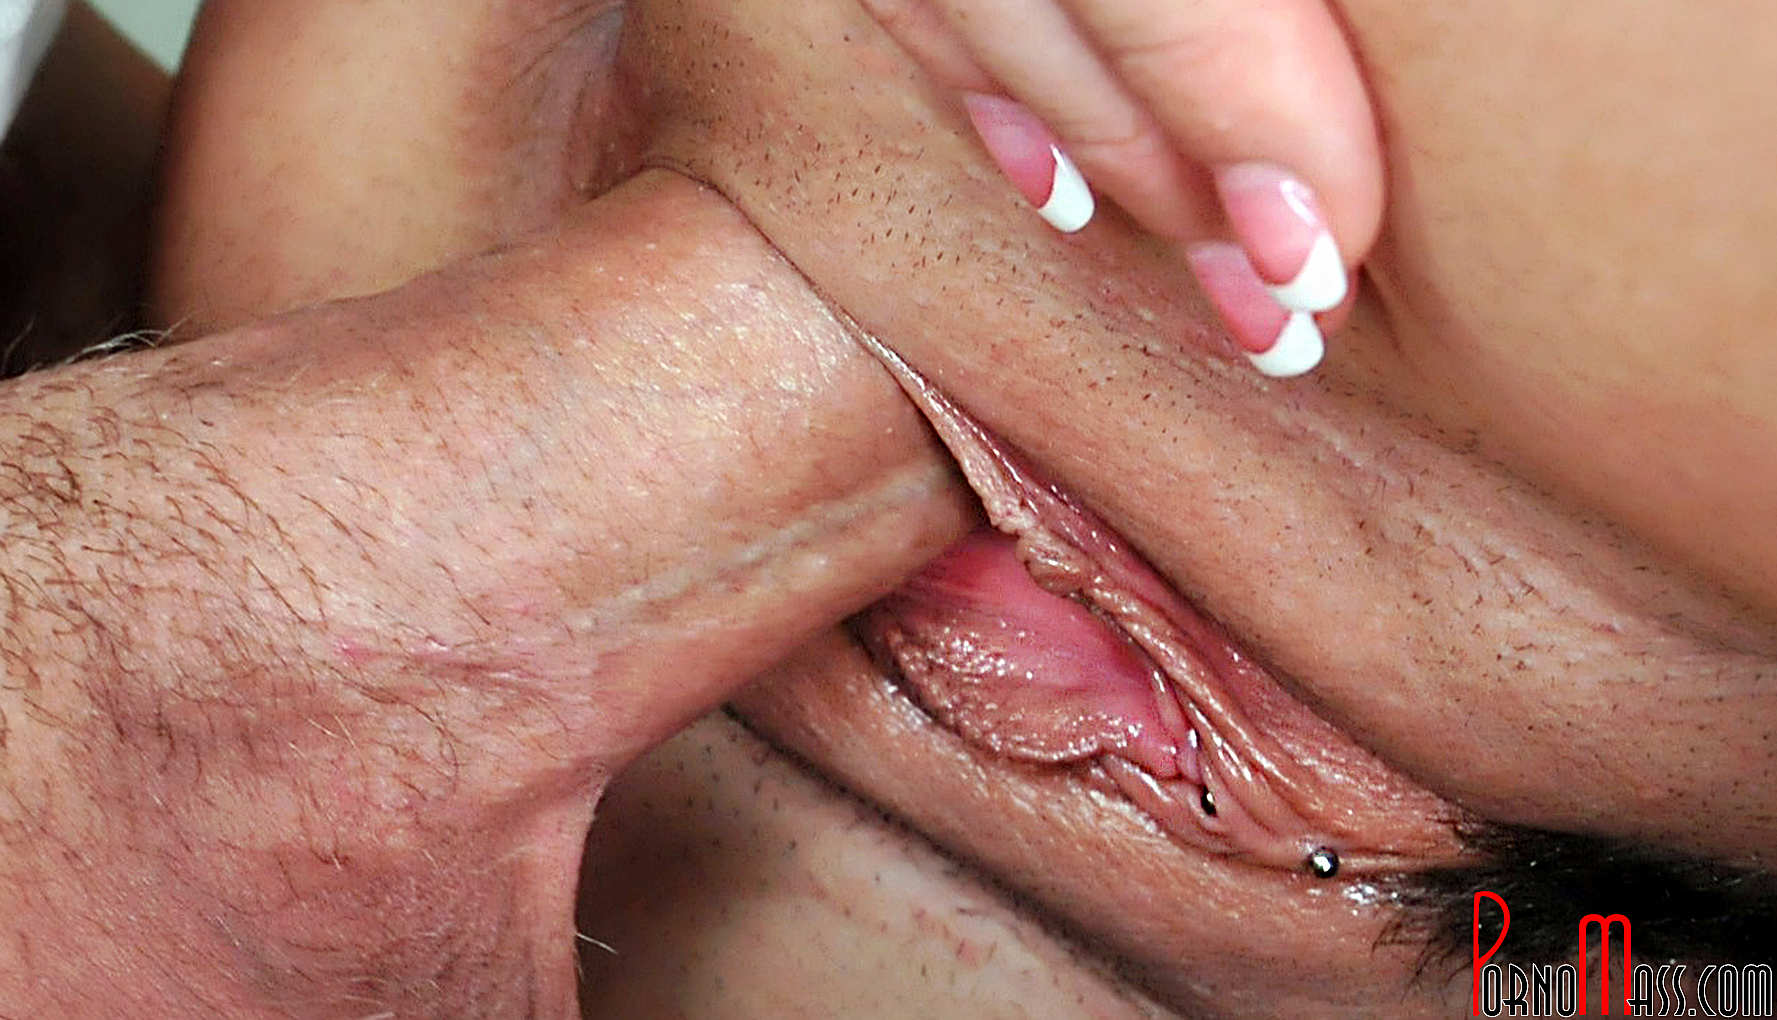 Blindfolded penetration pics